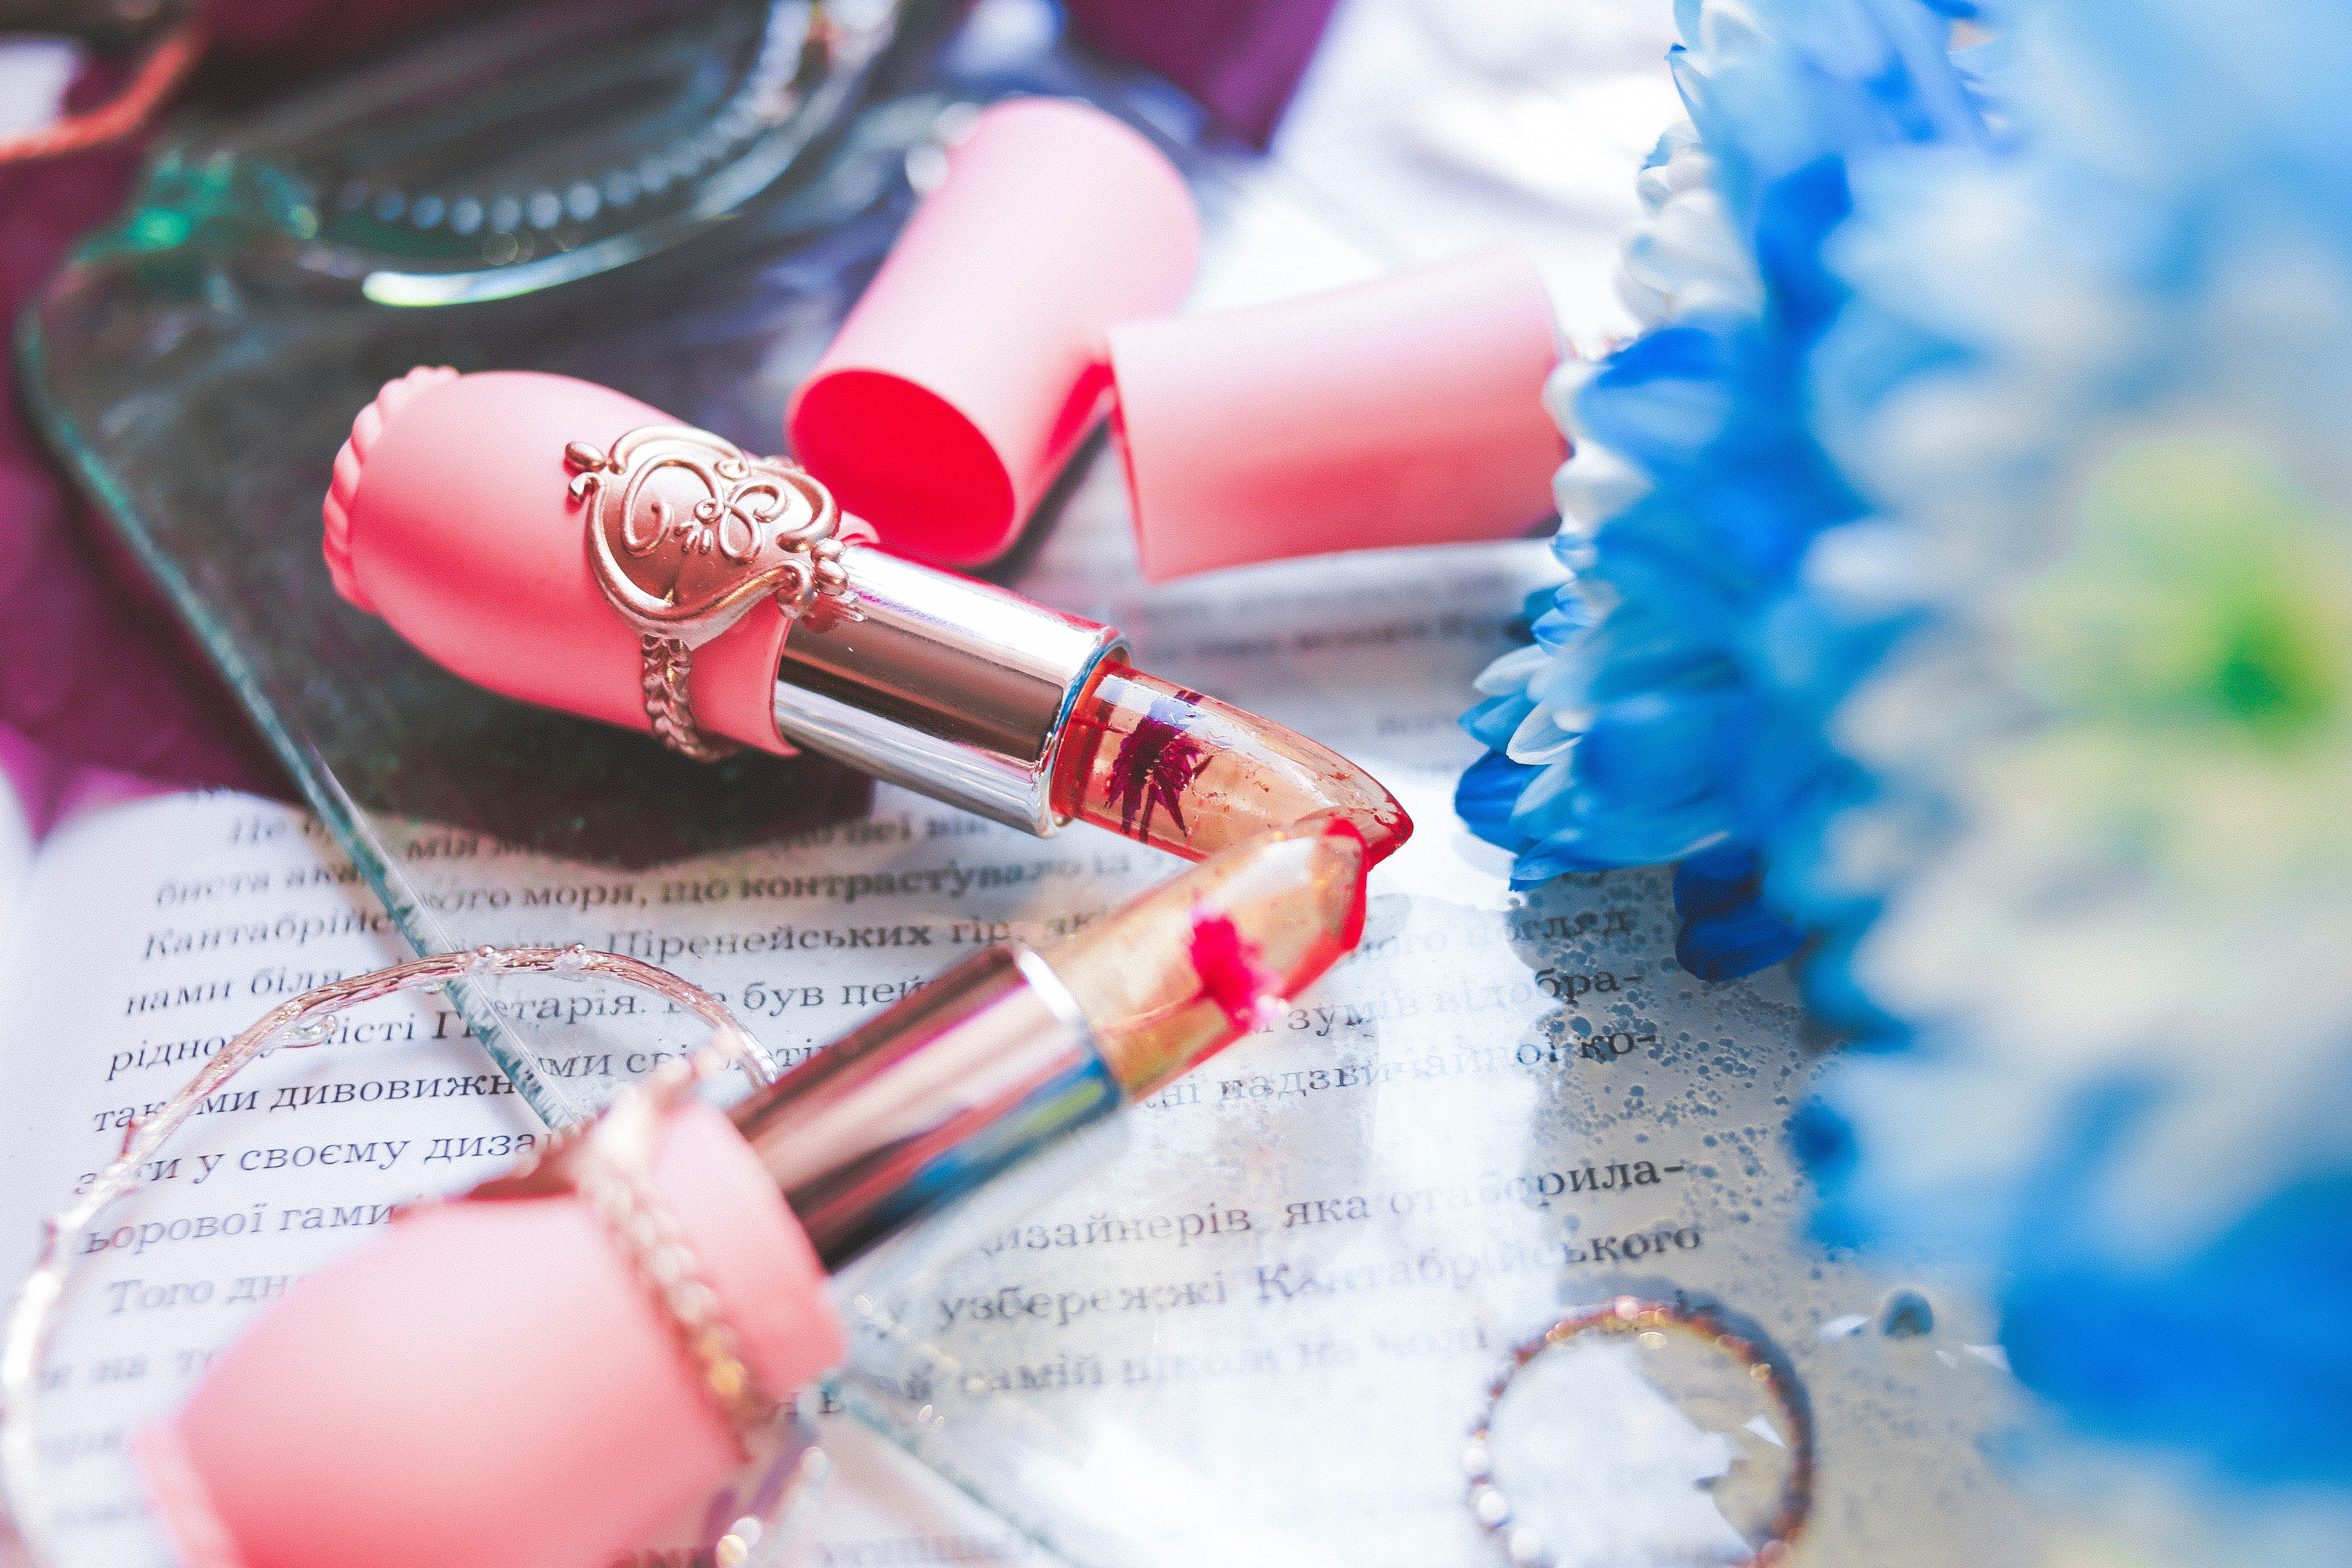 two pink lipsticks on table